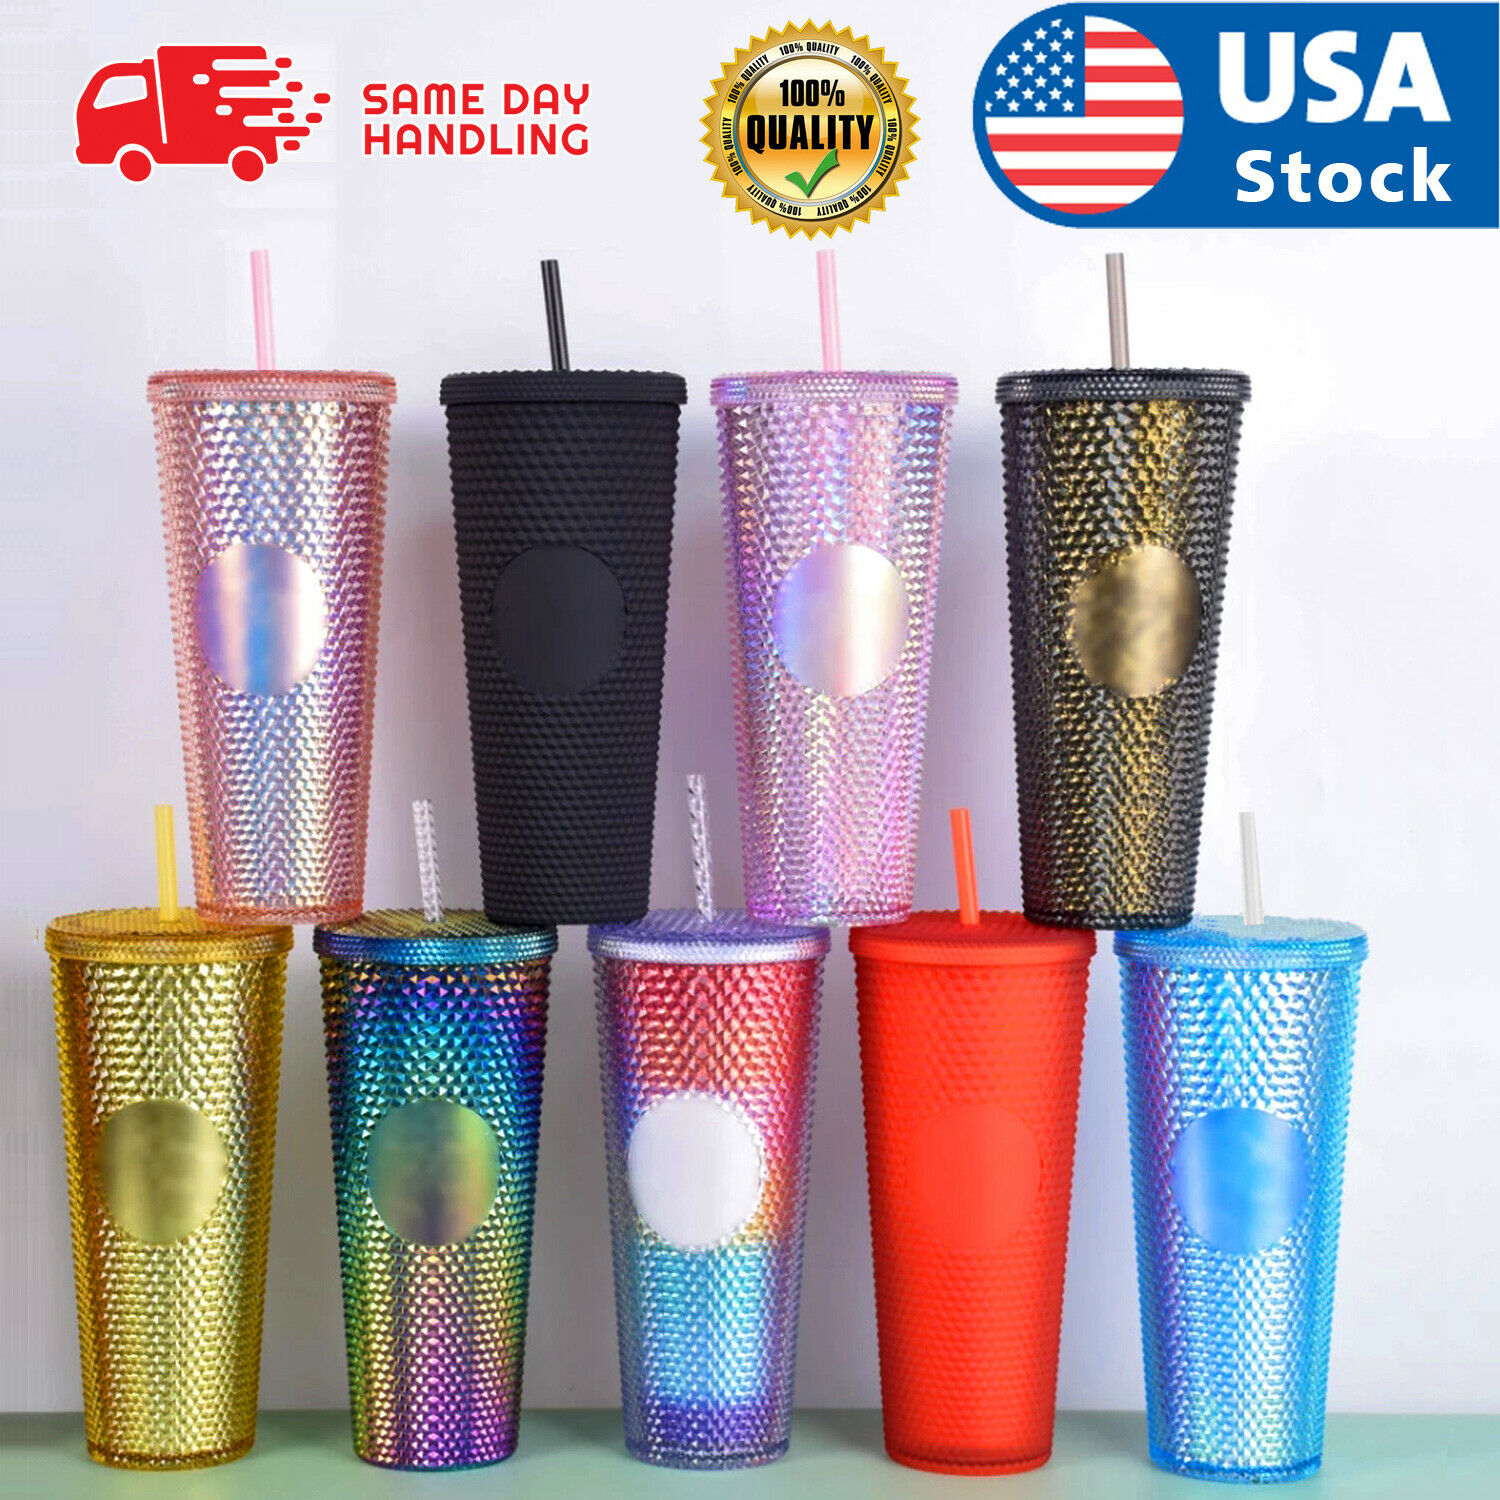 24oz Diamond Durian Double Wall Tumbler Pool Beach Cup with Straw Coffee Cold US Advertising